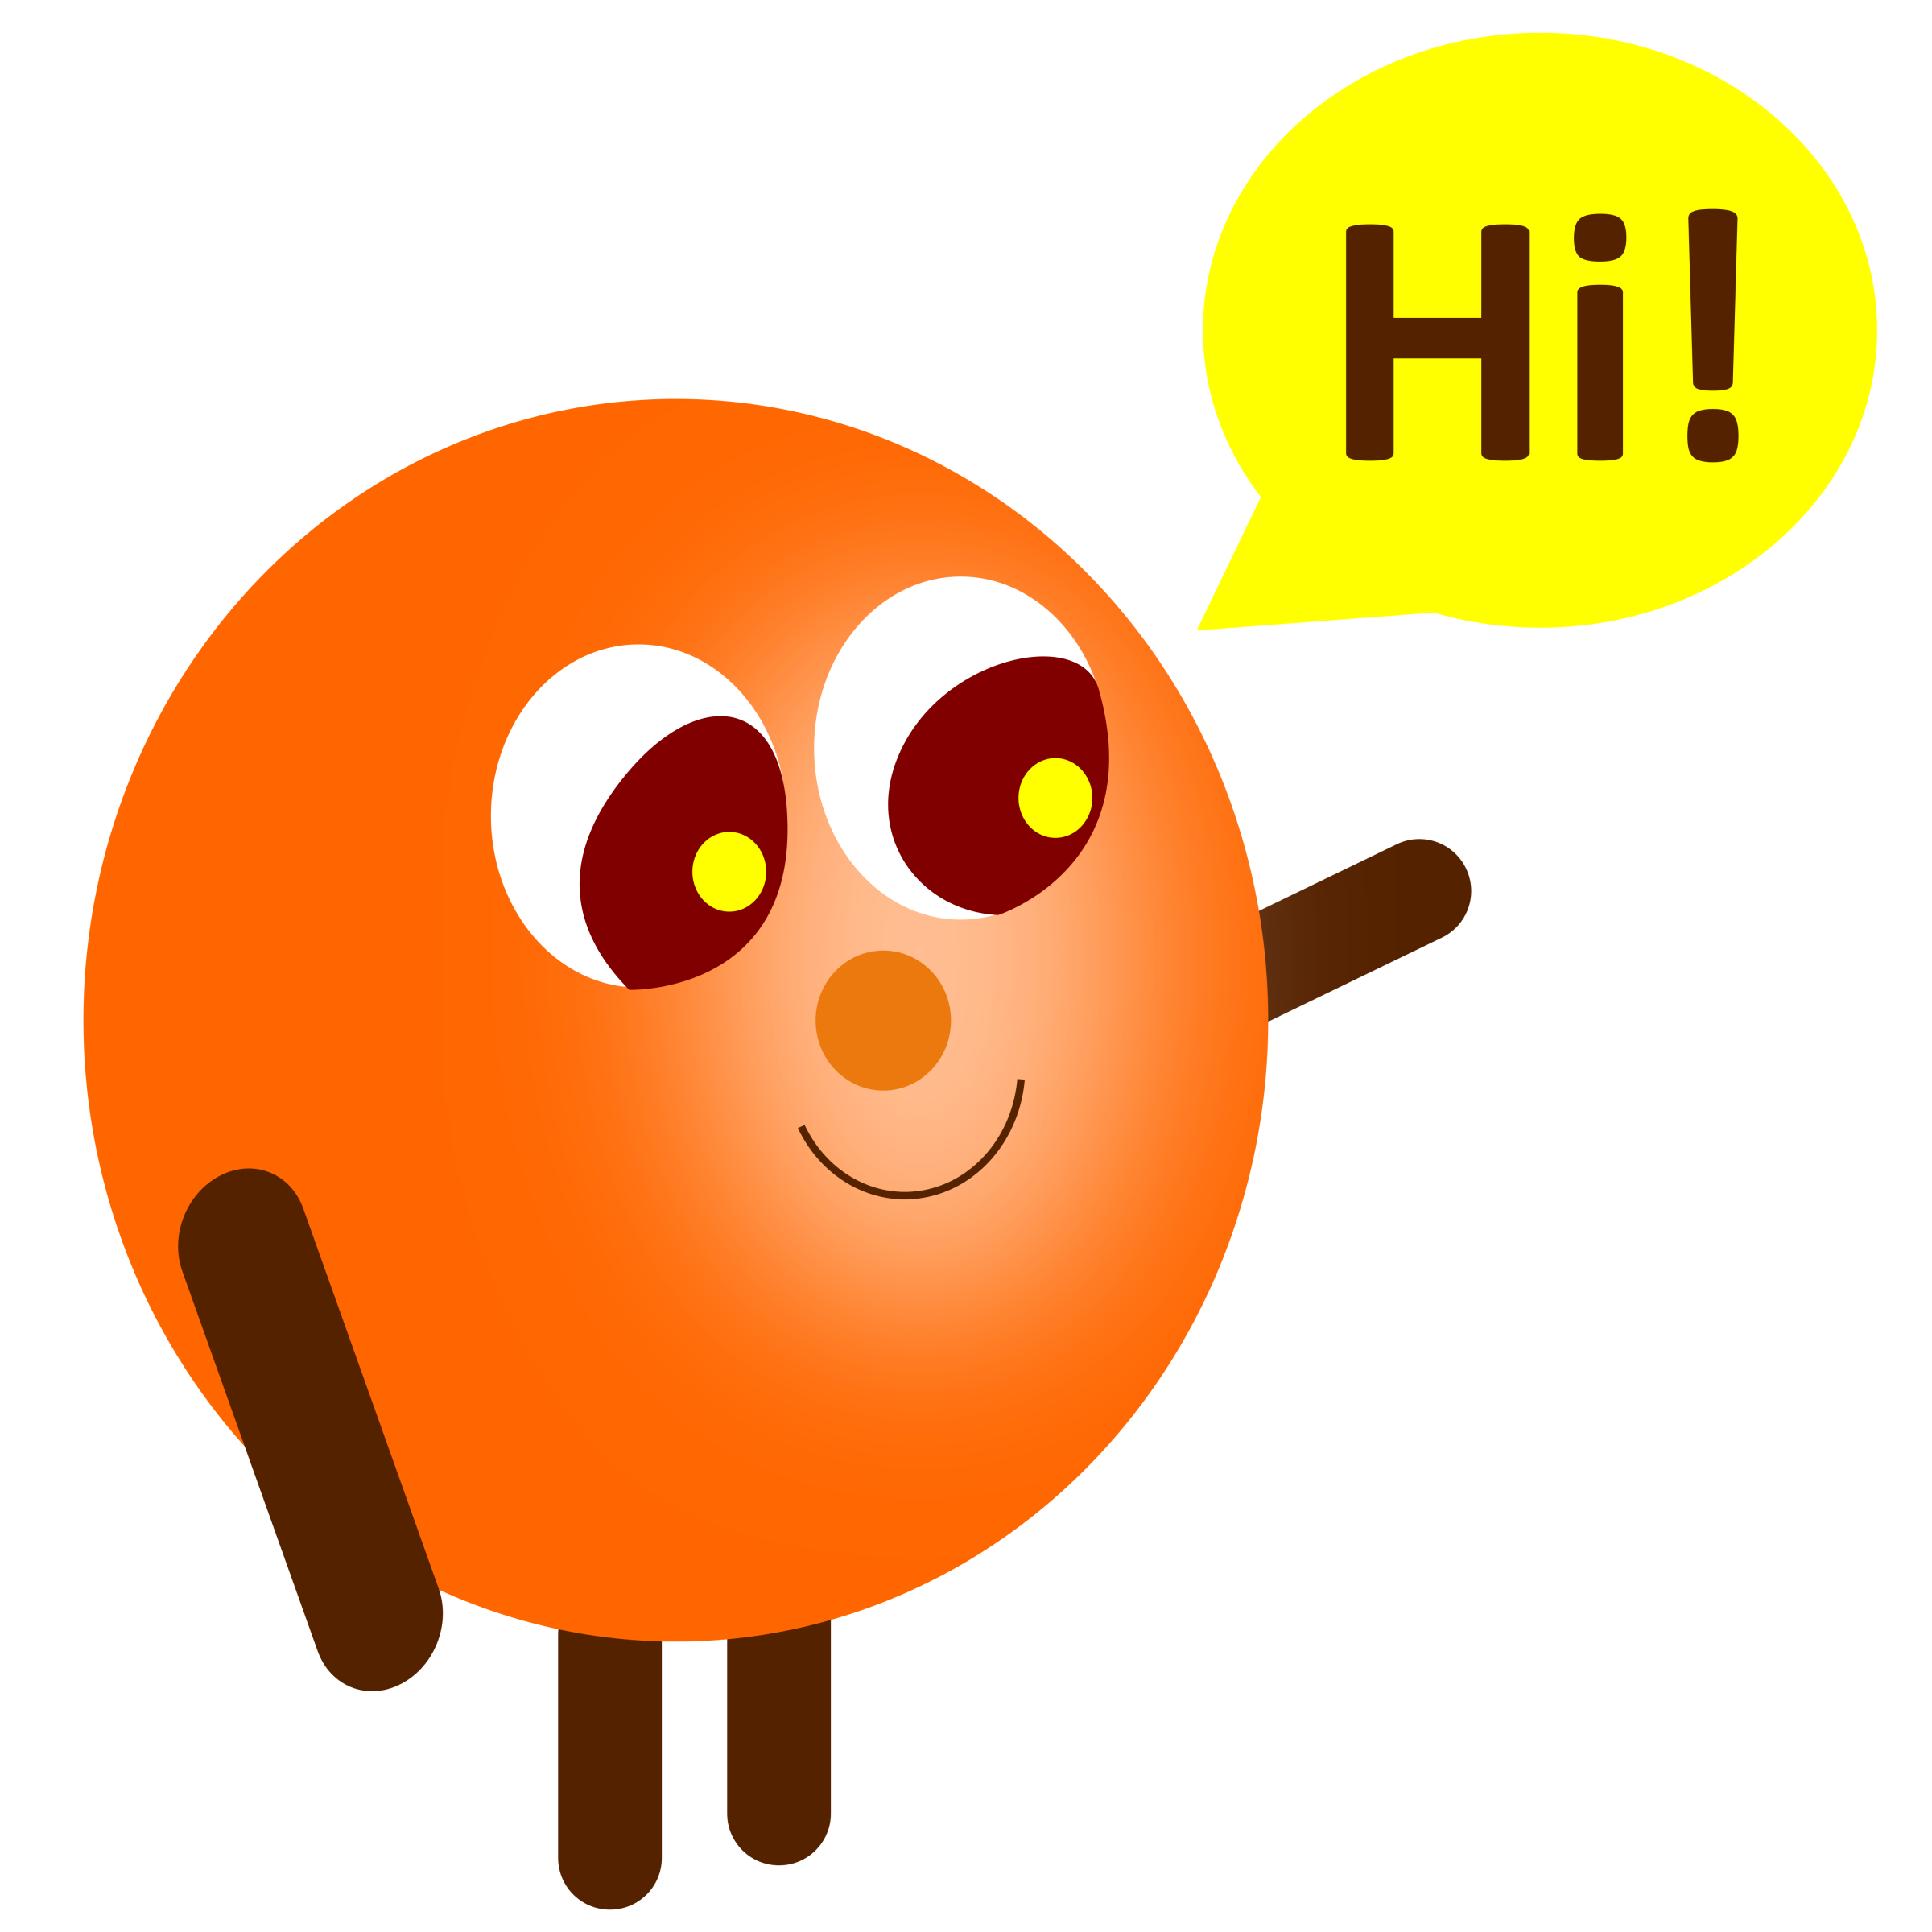 Hi clipart. Simple character and a